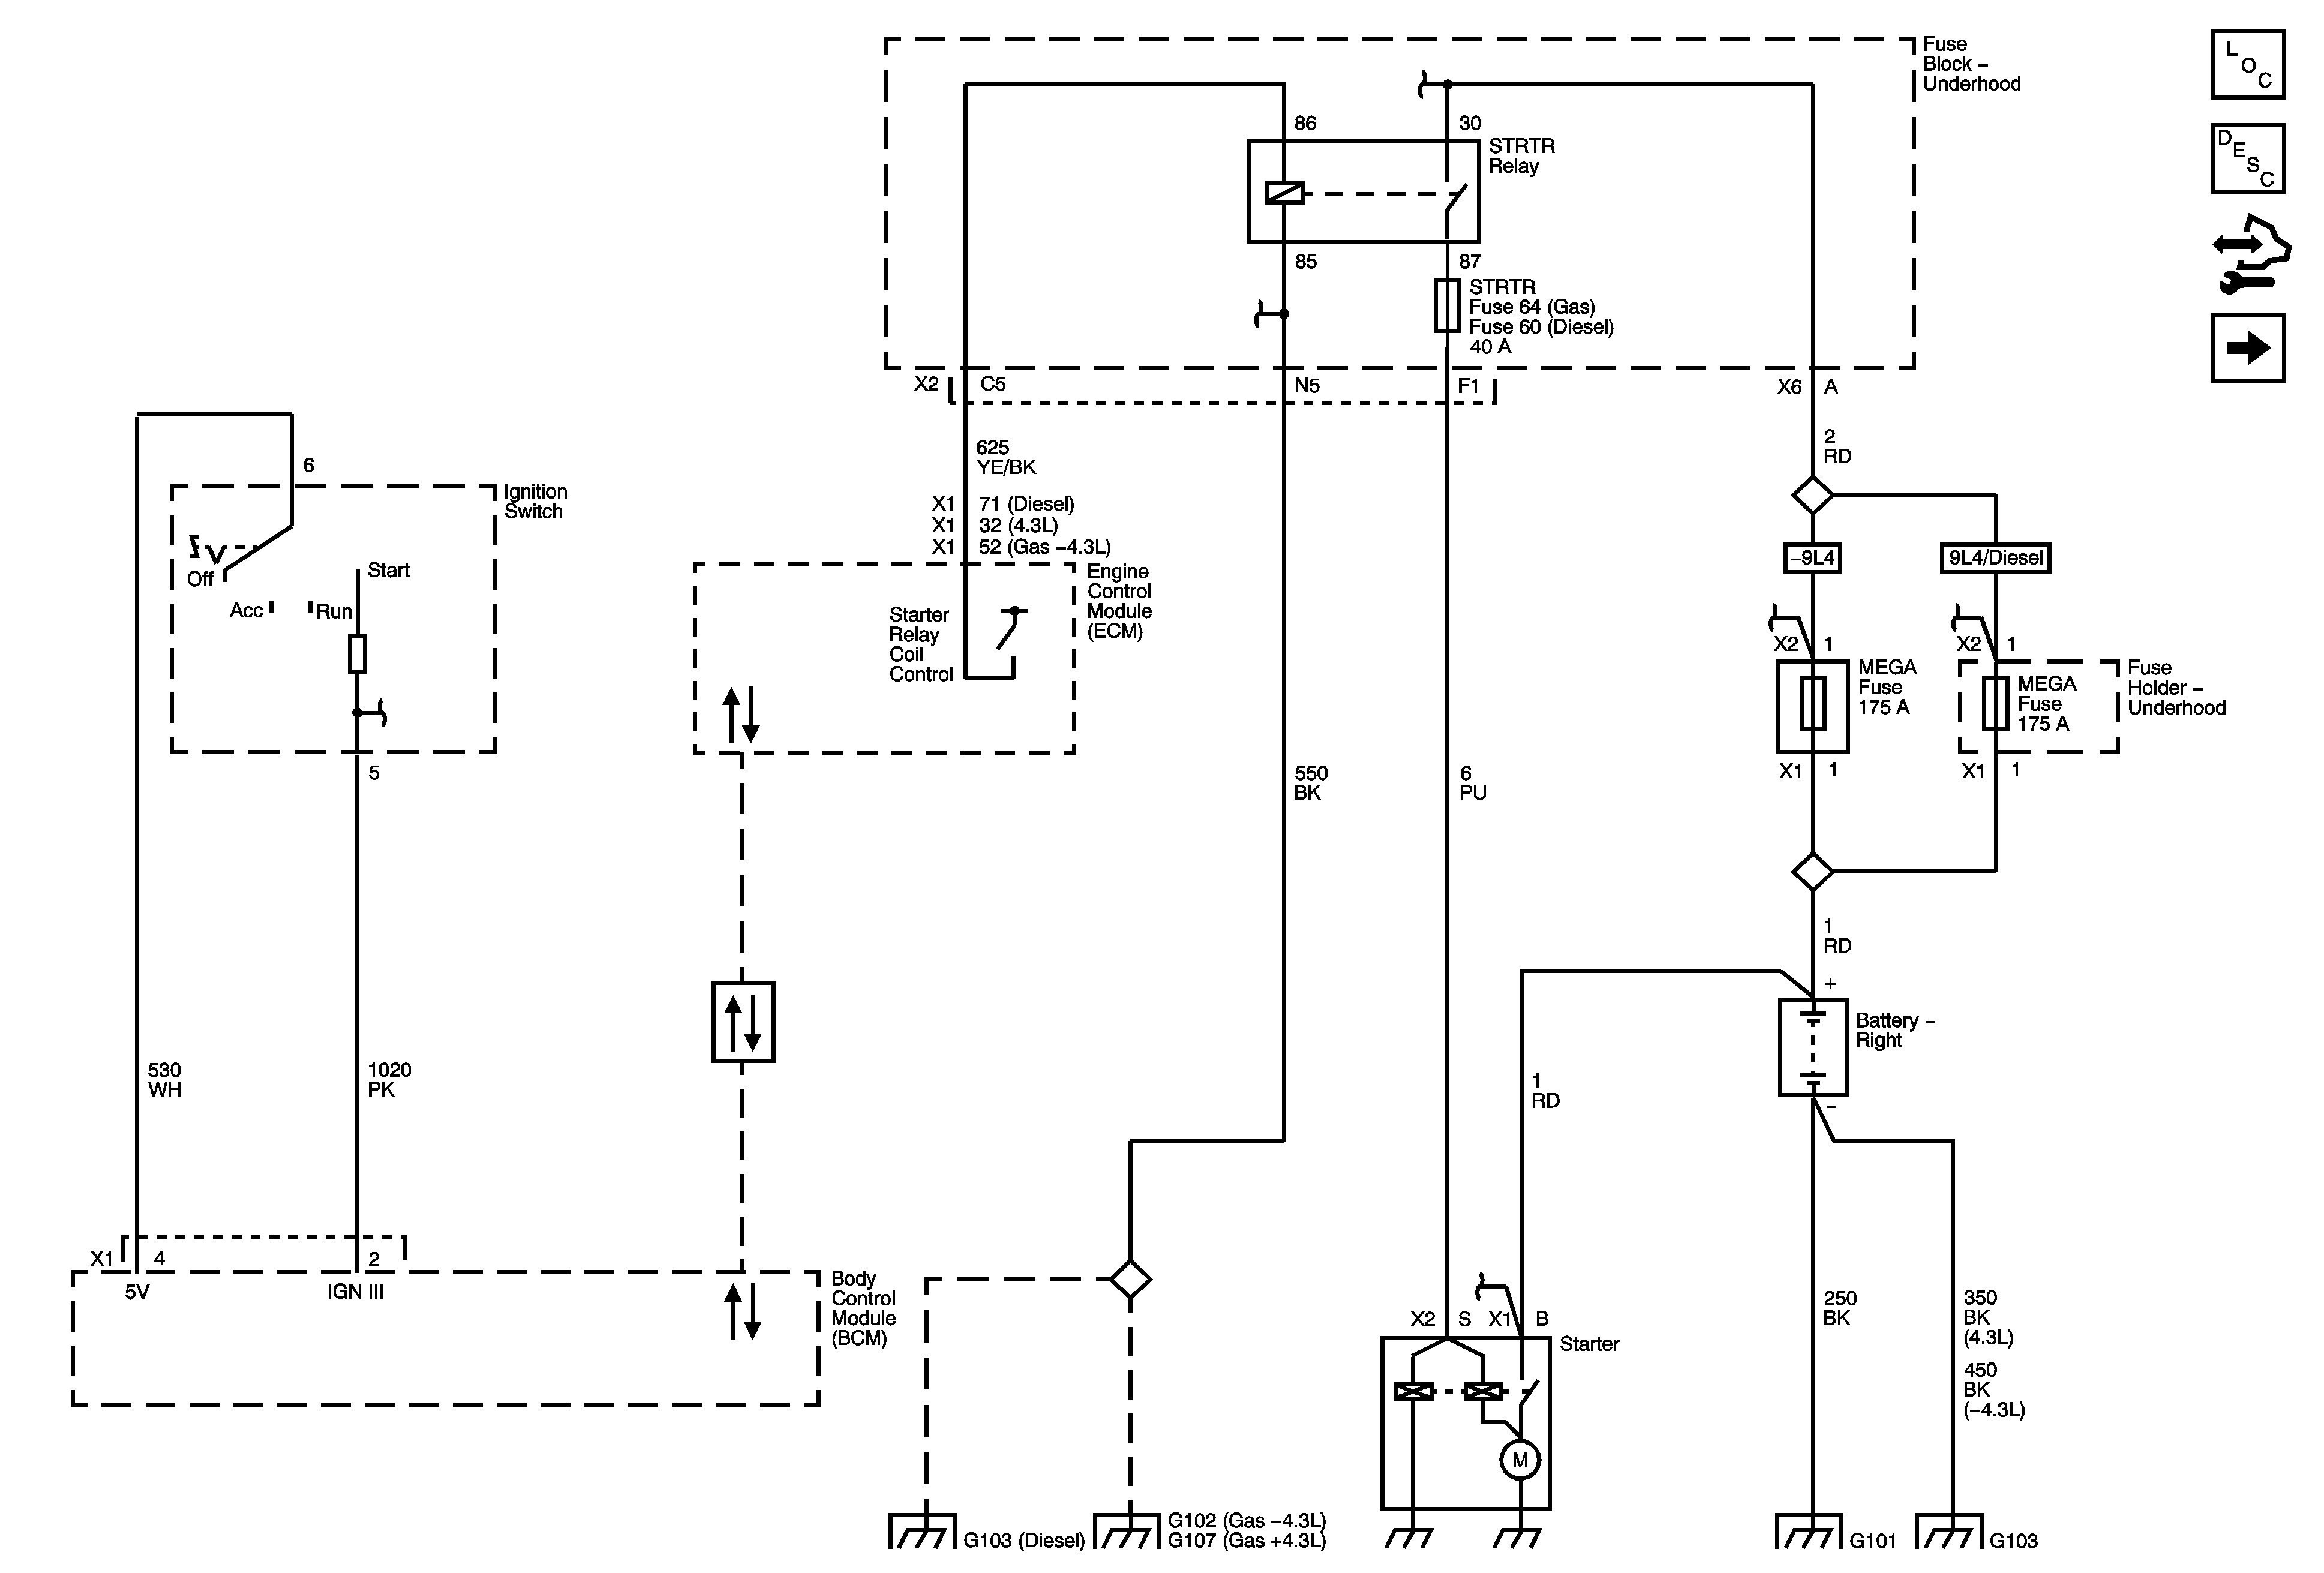 Wiring Diagram for Motor Starter Save Wiring Diagram Car Starter Motor Valid Wiring Diagram for Car